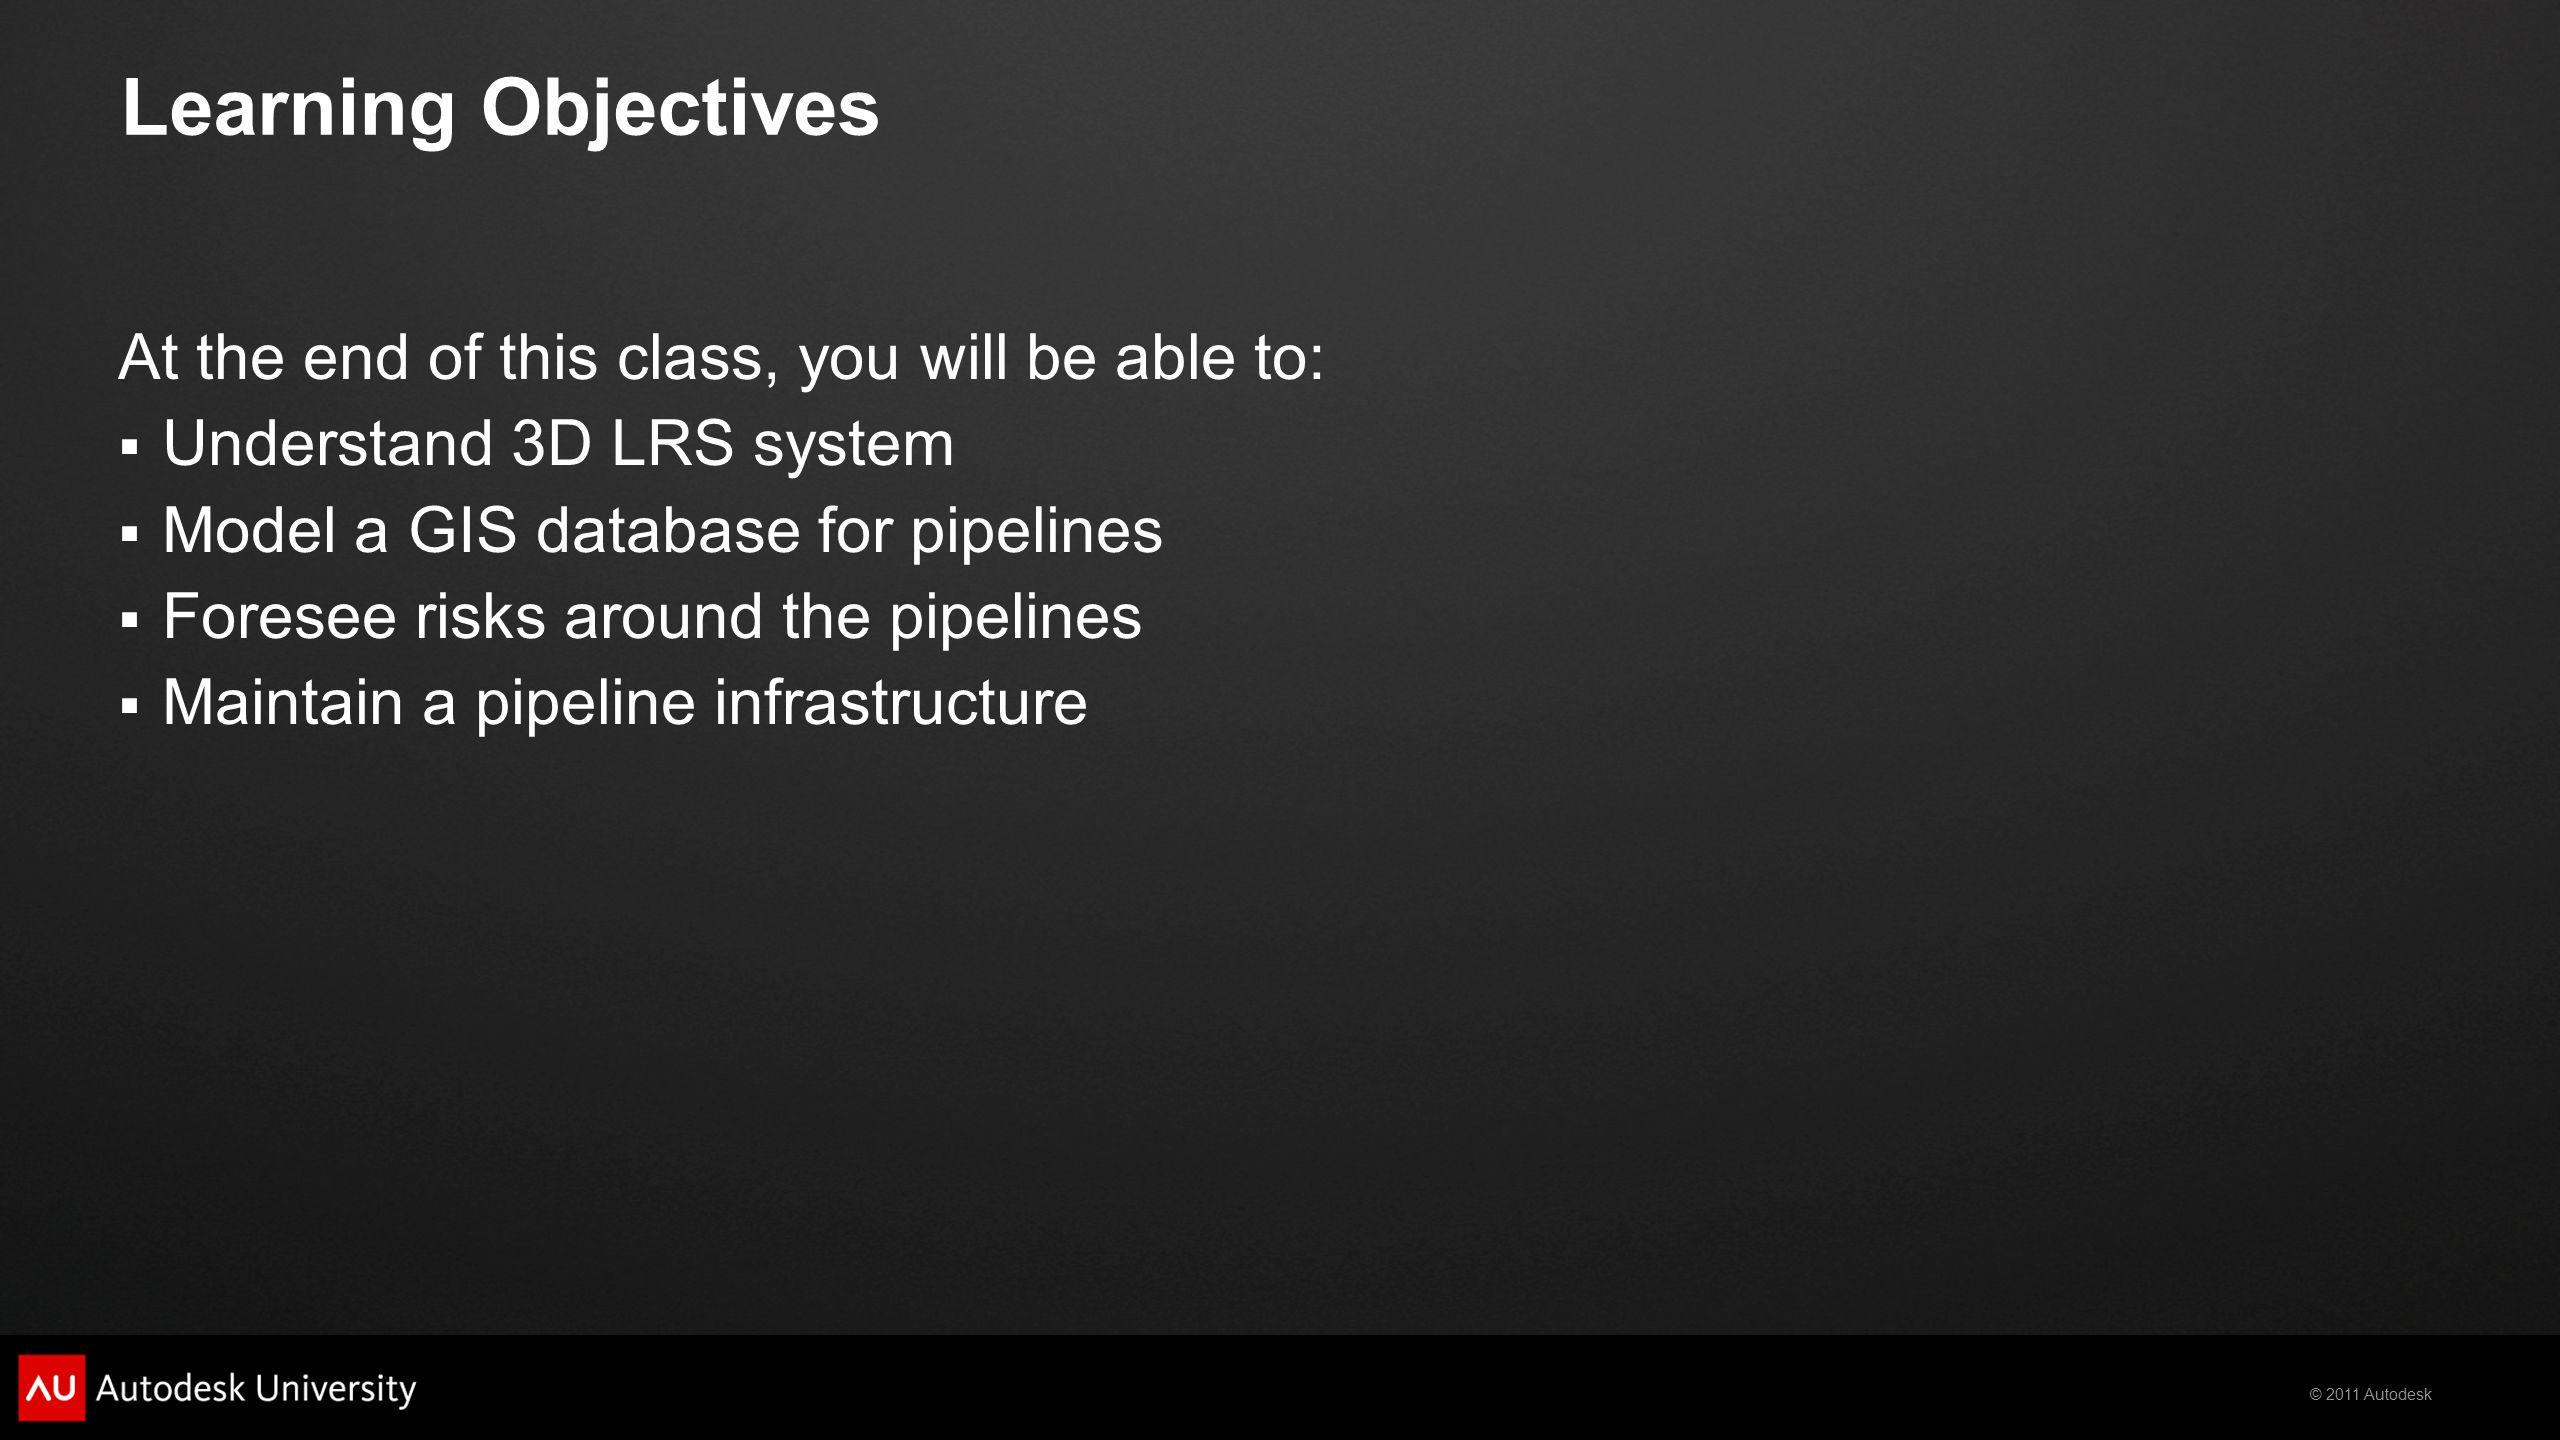 © 2011 Autodesk Learning Objectives At the end of this class, you will be able to:  Understand 3D LRS system  Model a GIS database for pipelines  Foresee risks around the pipelines  Maintain a pipeline infrastructure